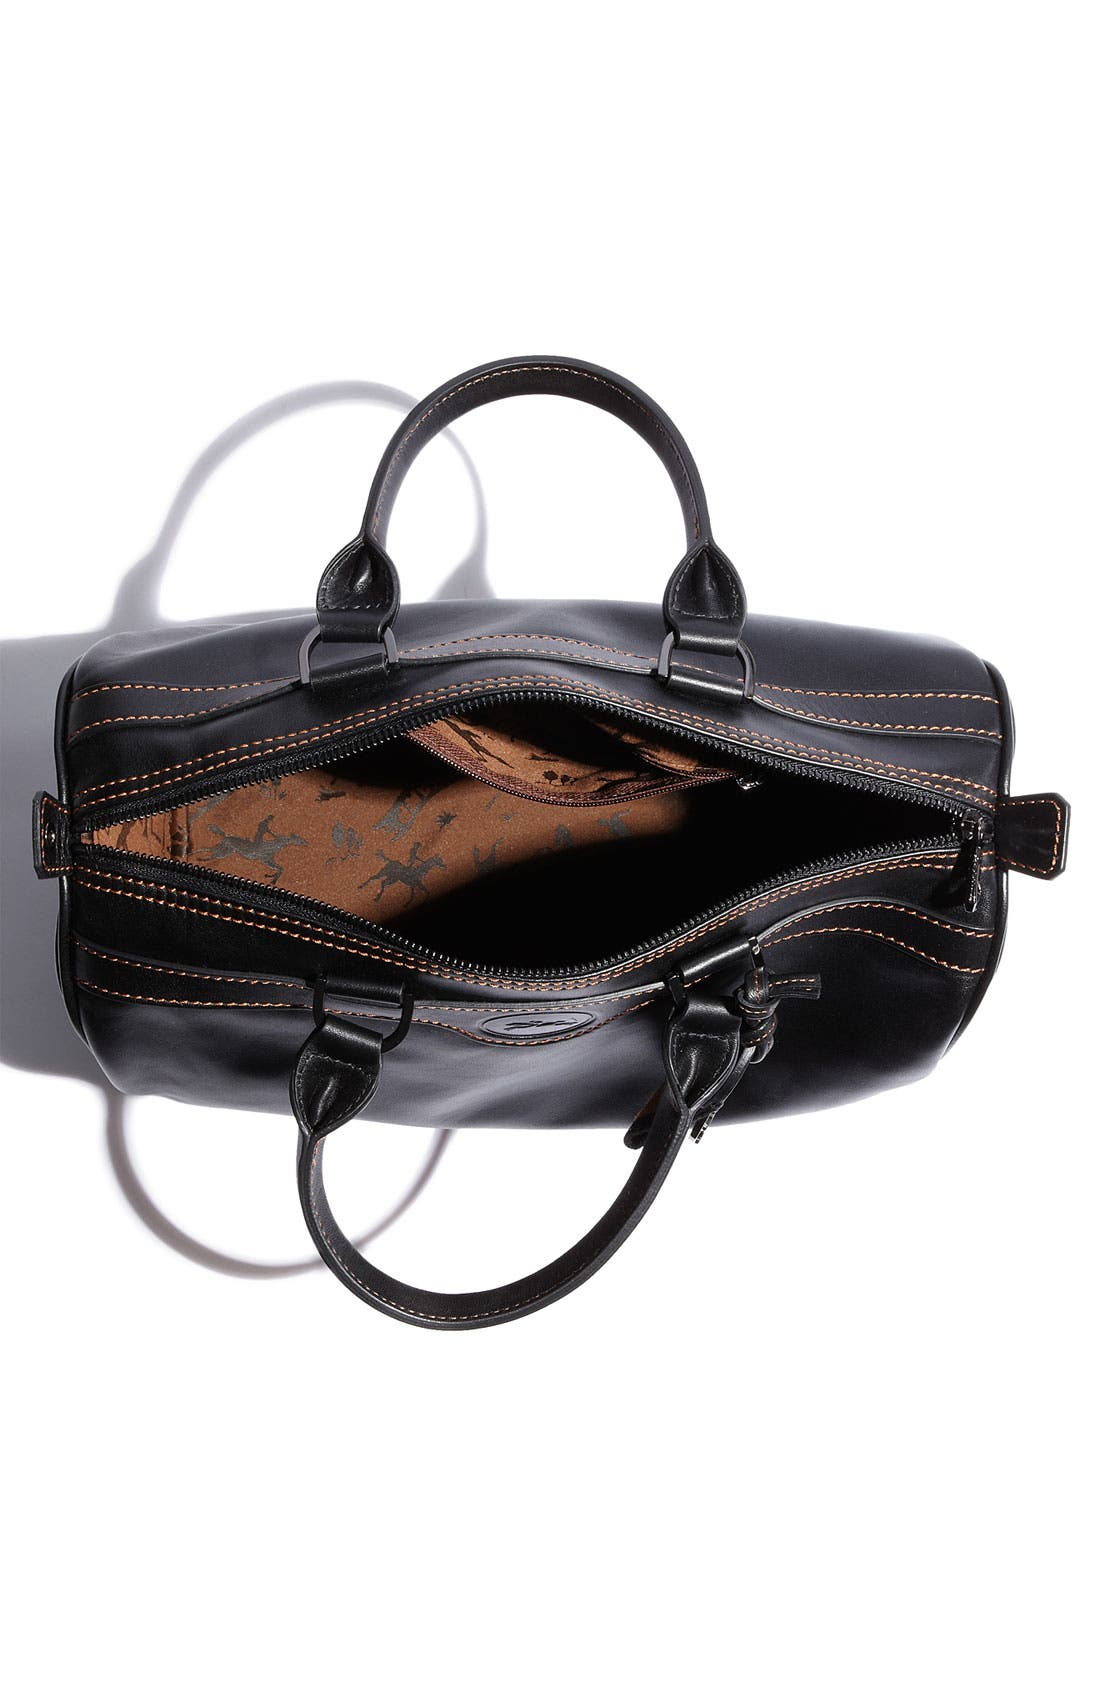 Alternate Image 3  - Longchamp 'Au Sultan' Leather Satchel